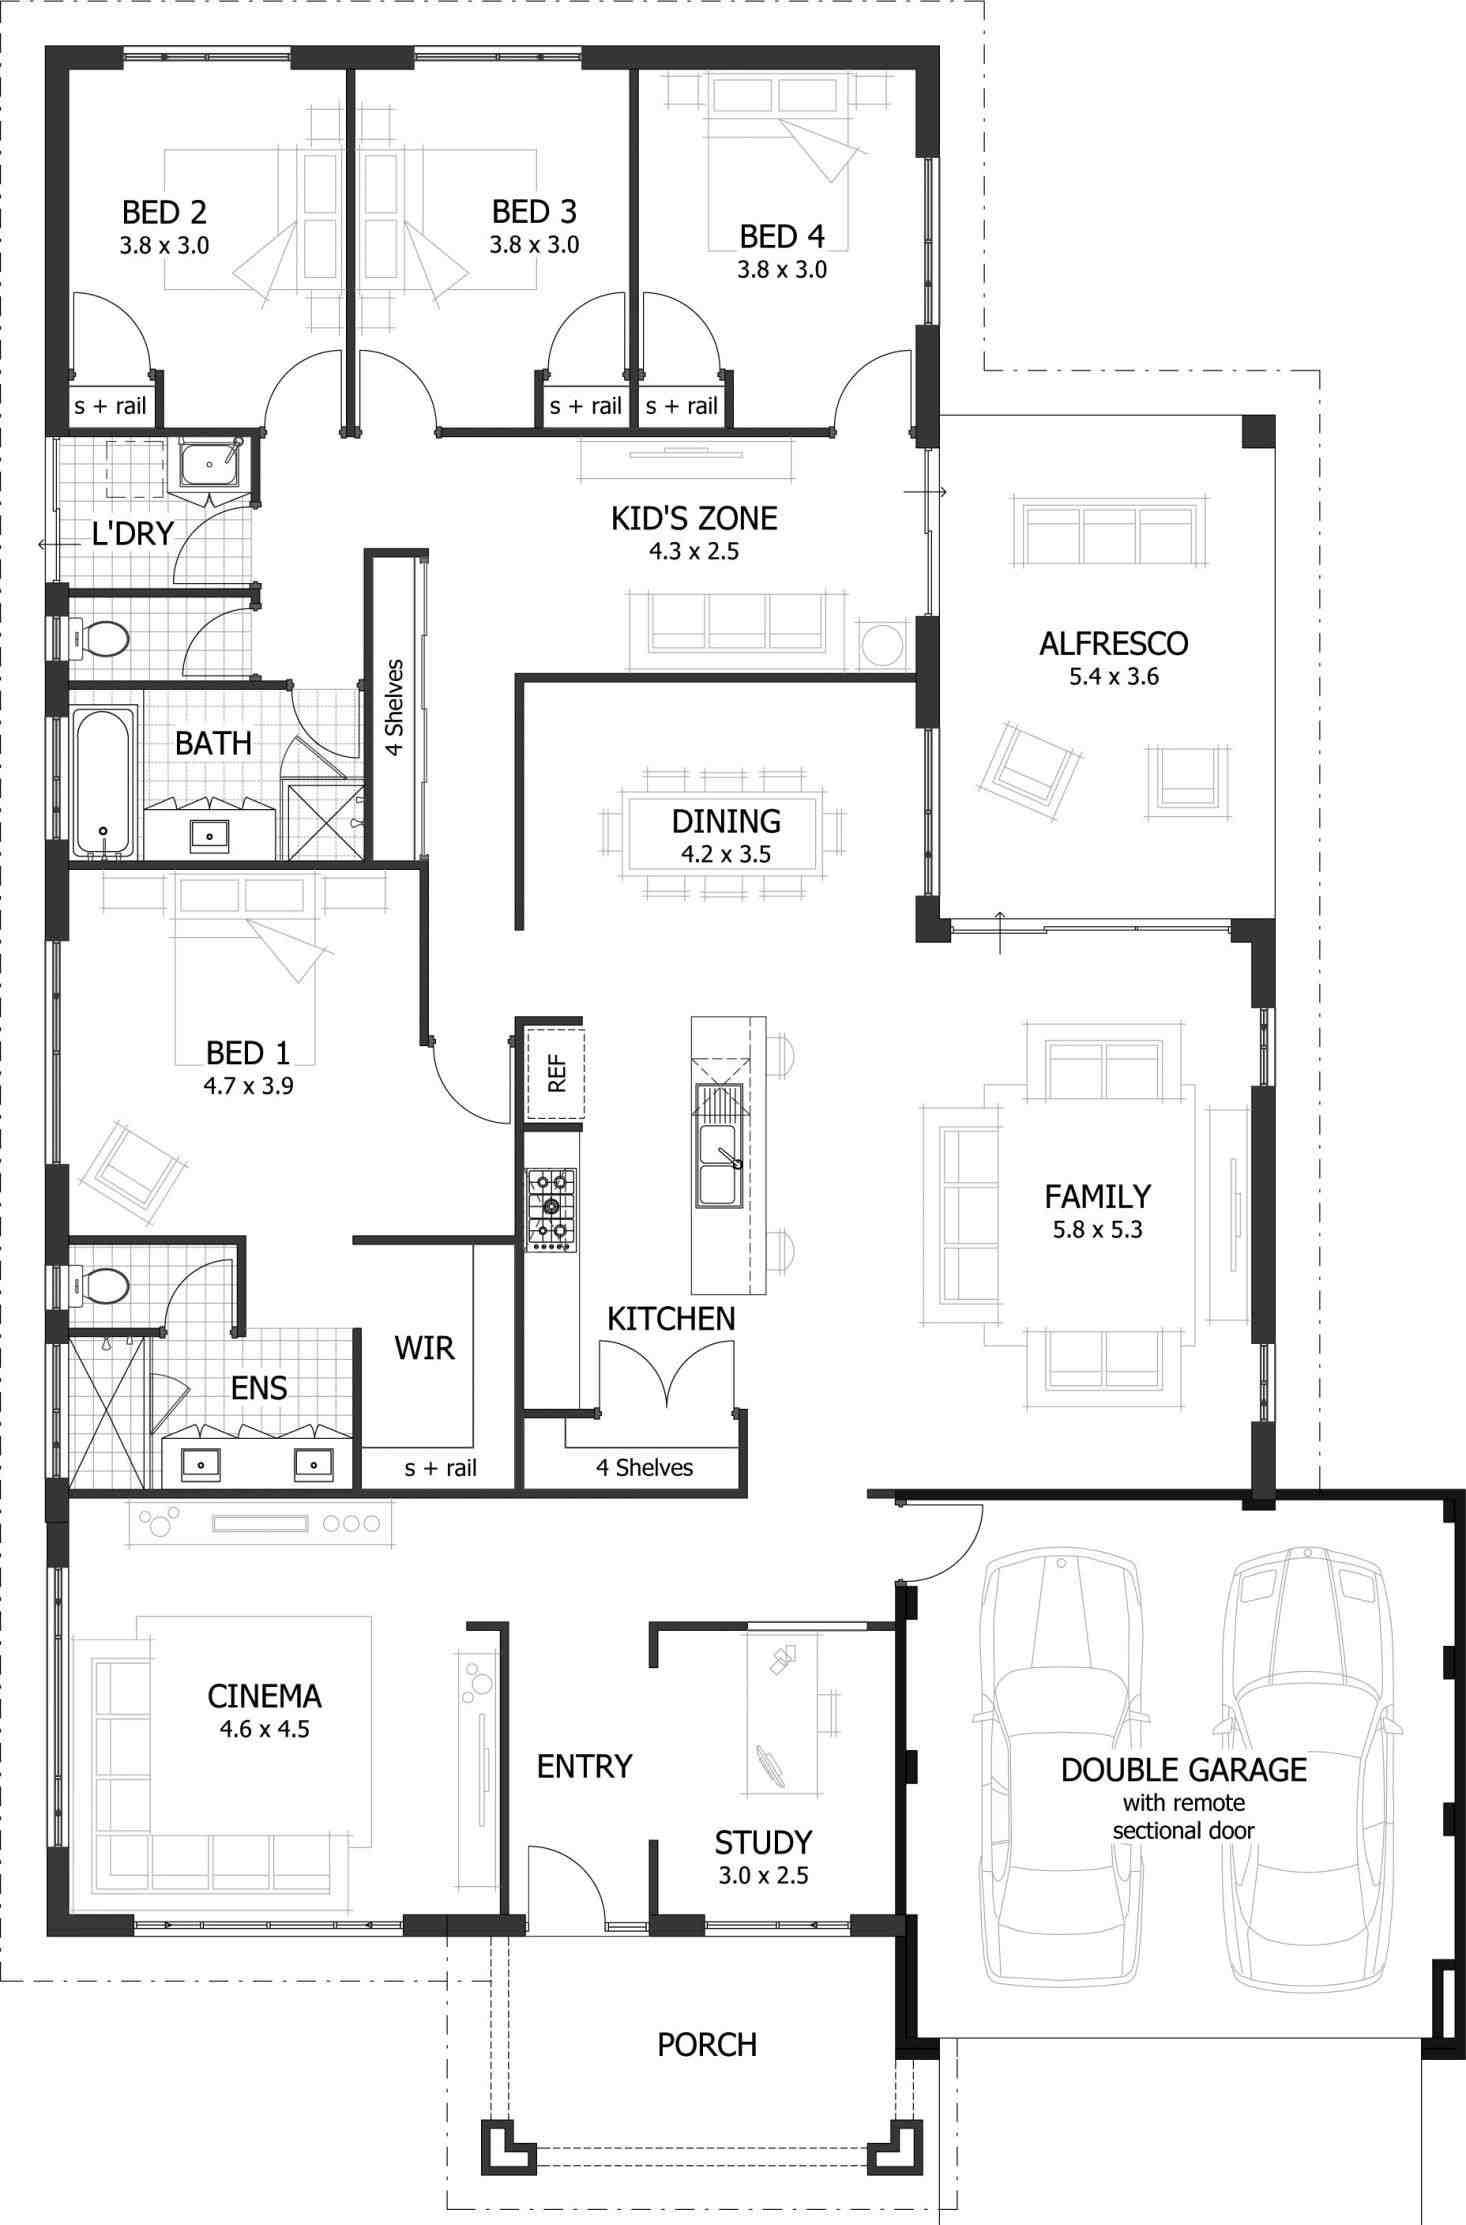 12 bedroom house plans - d floor plans with adfcfeb bedroom house